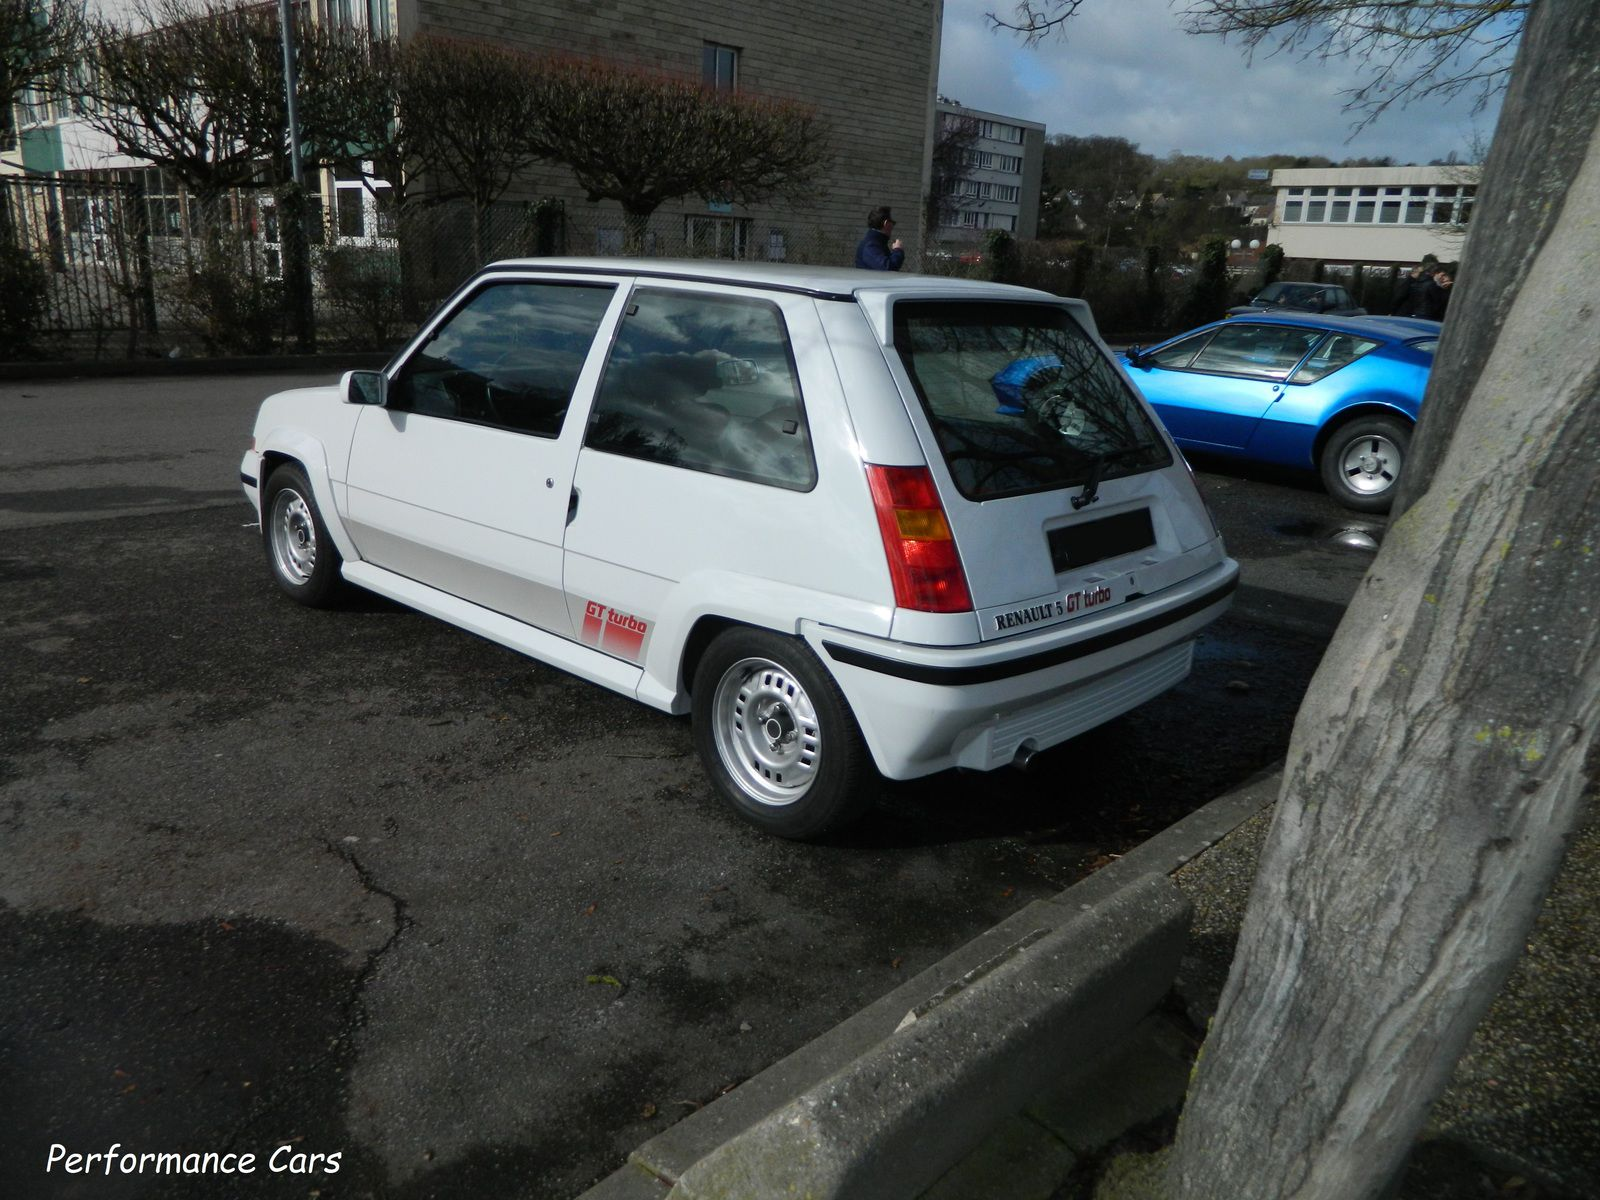 GT turbo by Renault